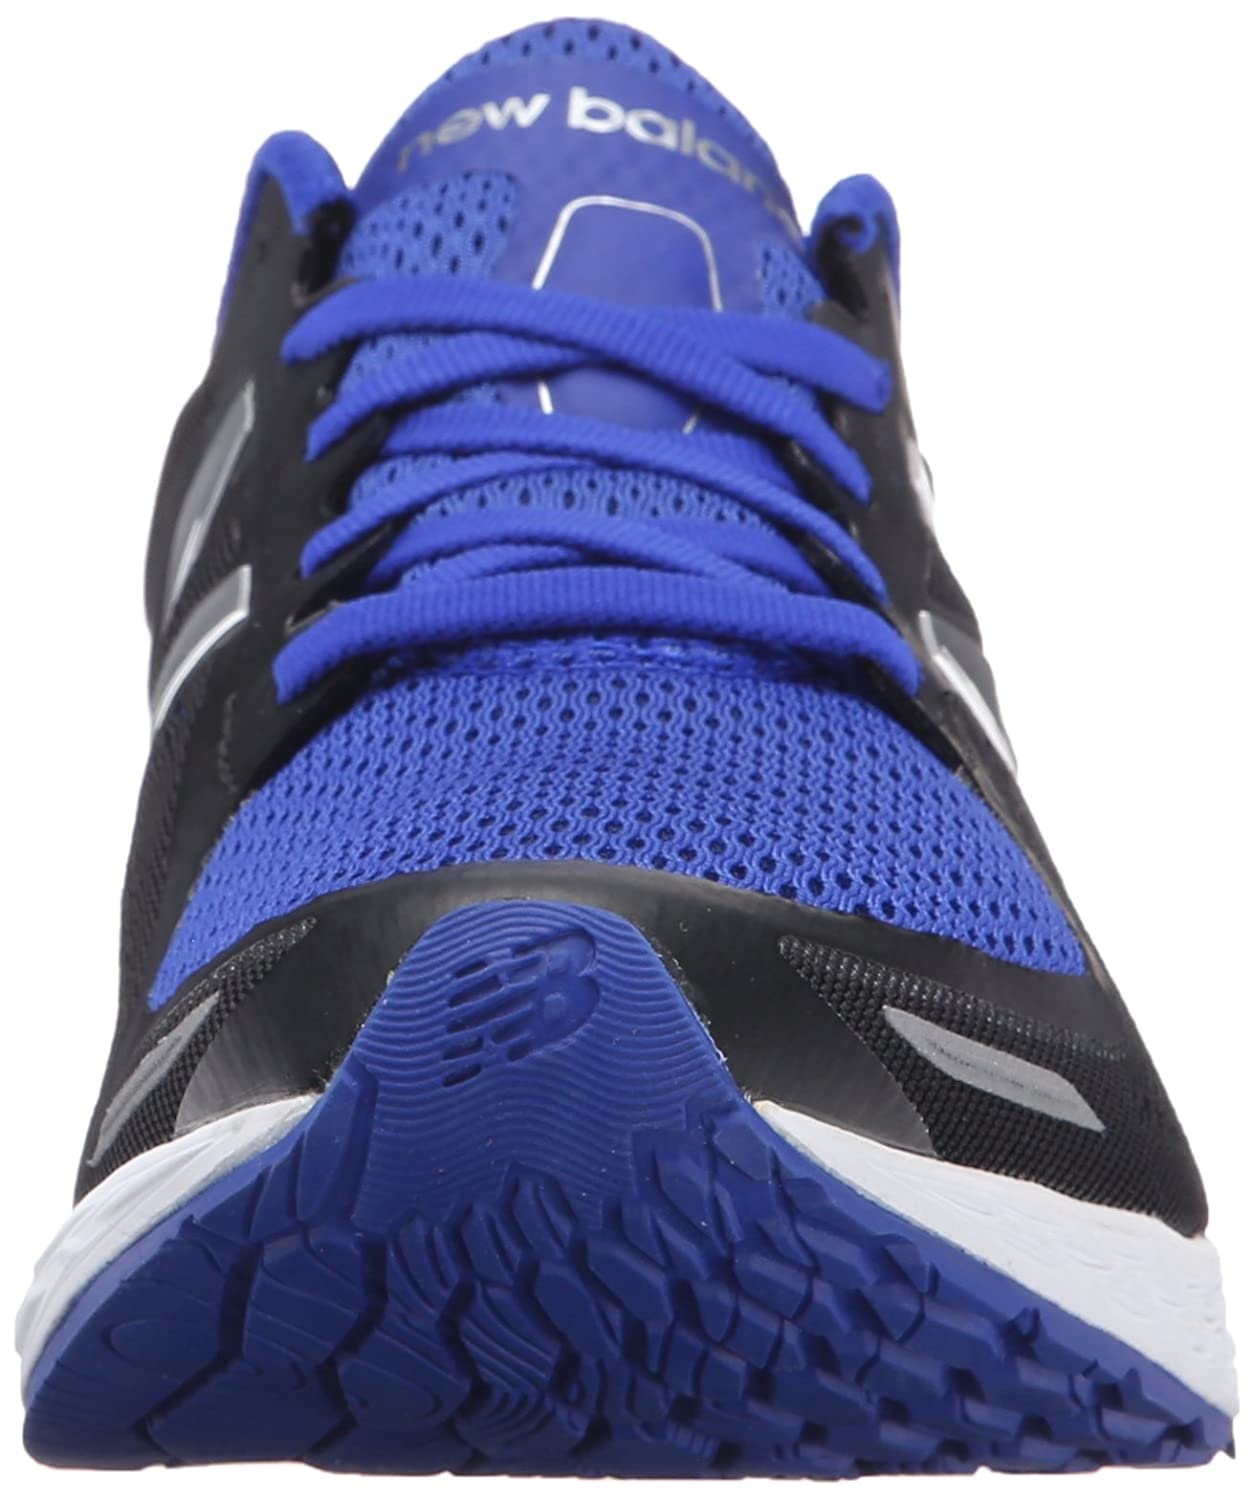 Nike Free 5.0 +2 Running Shoes Blue Fluorscent Green